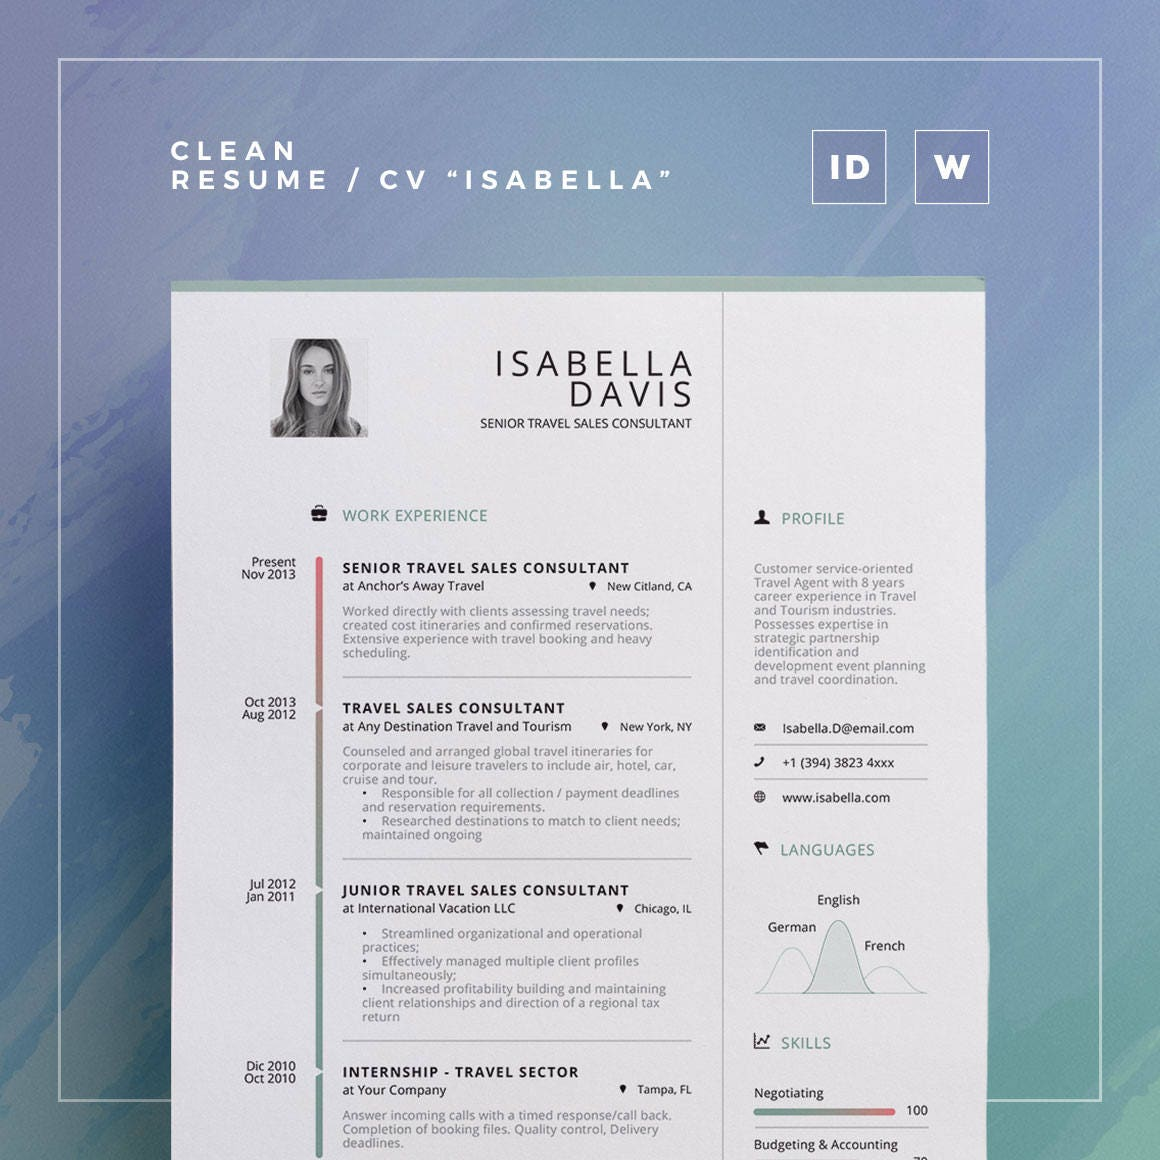 clean resume  cv isabella word and indesign